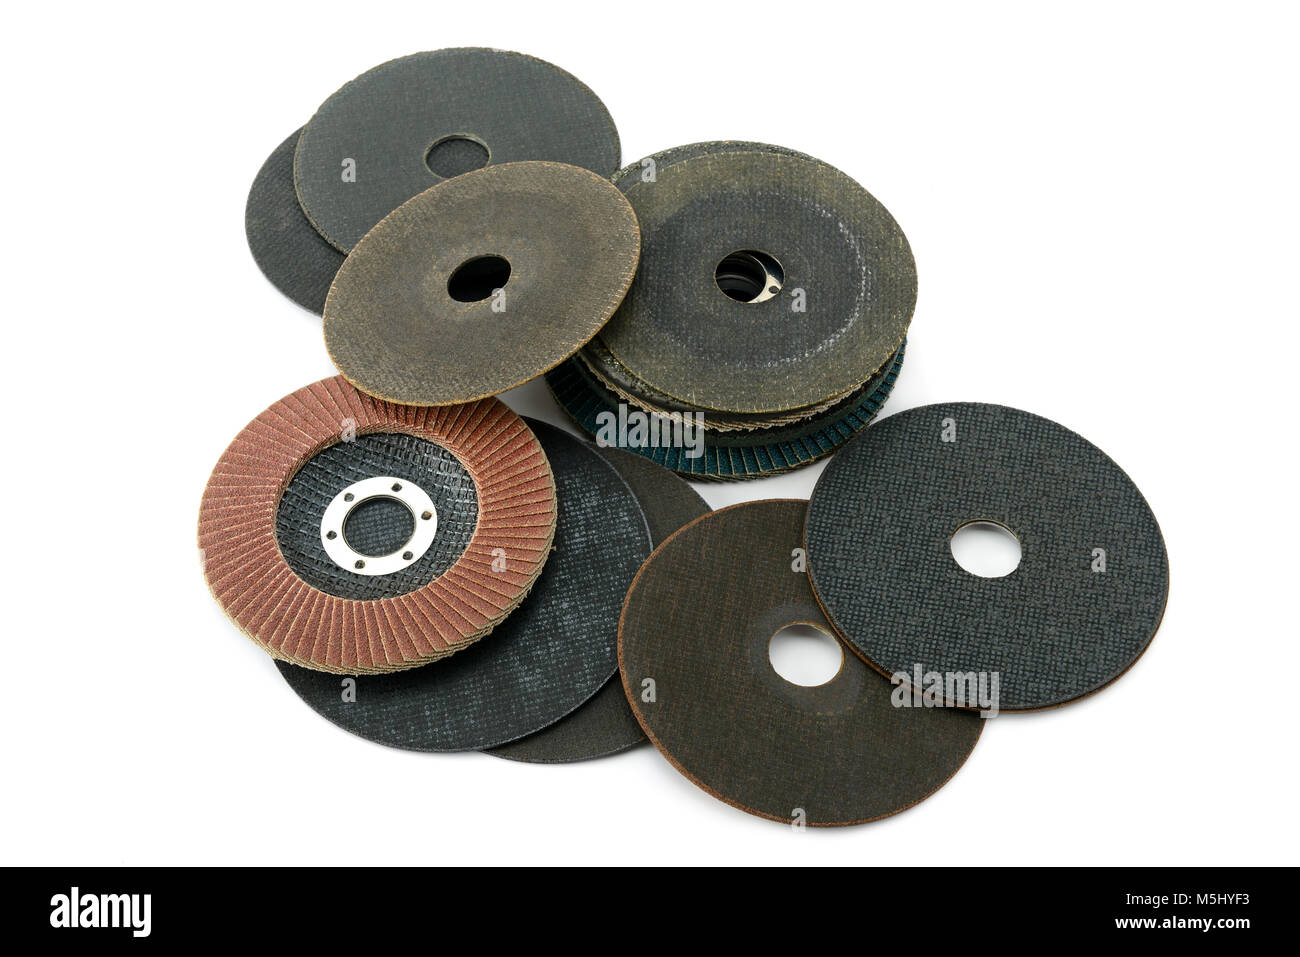 Set cutting discs for angle grinder isolated on white background. Top view. - Stock Image